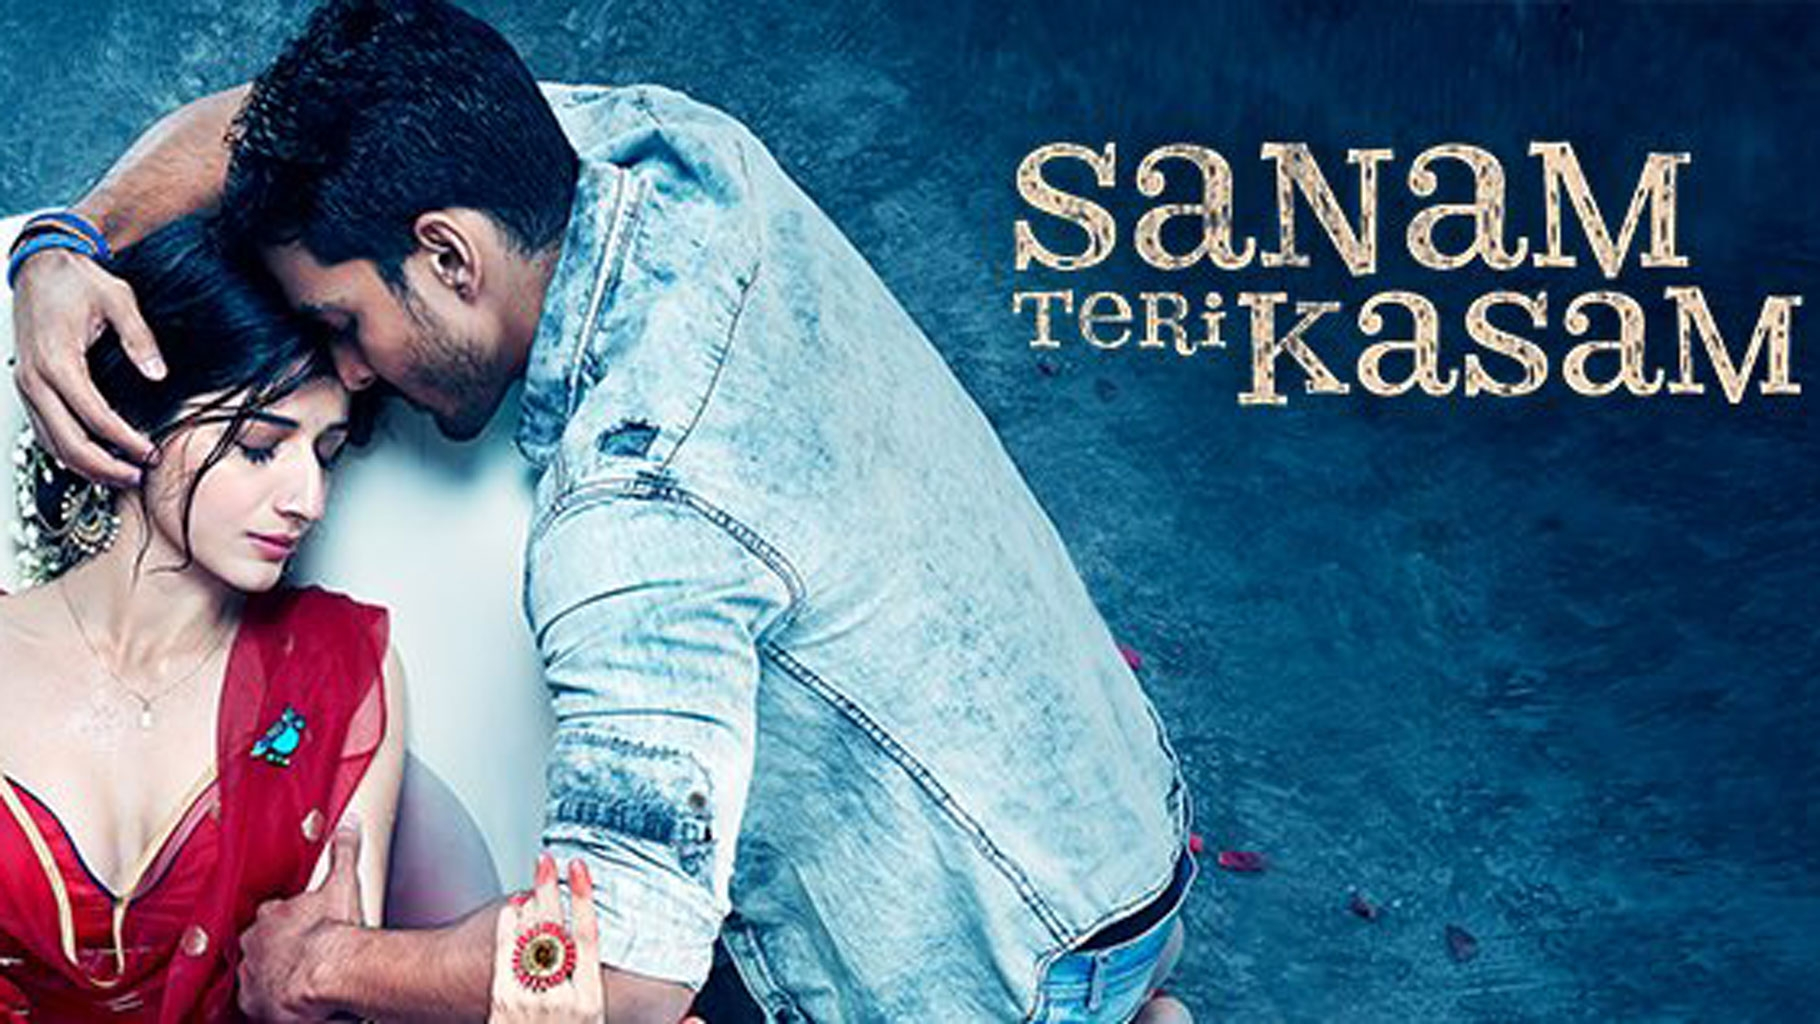 Sanam Teri Kasam Ka Downloading Mp3 - Song Mp3 Music